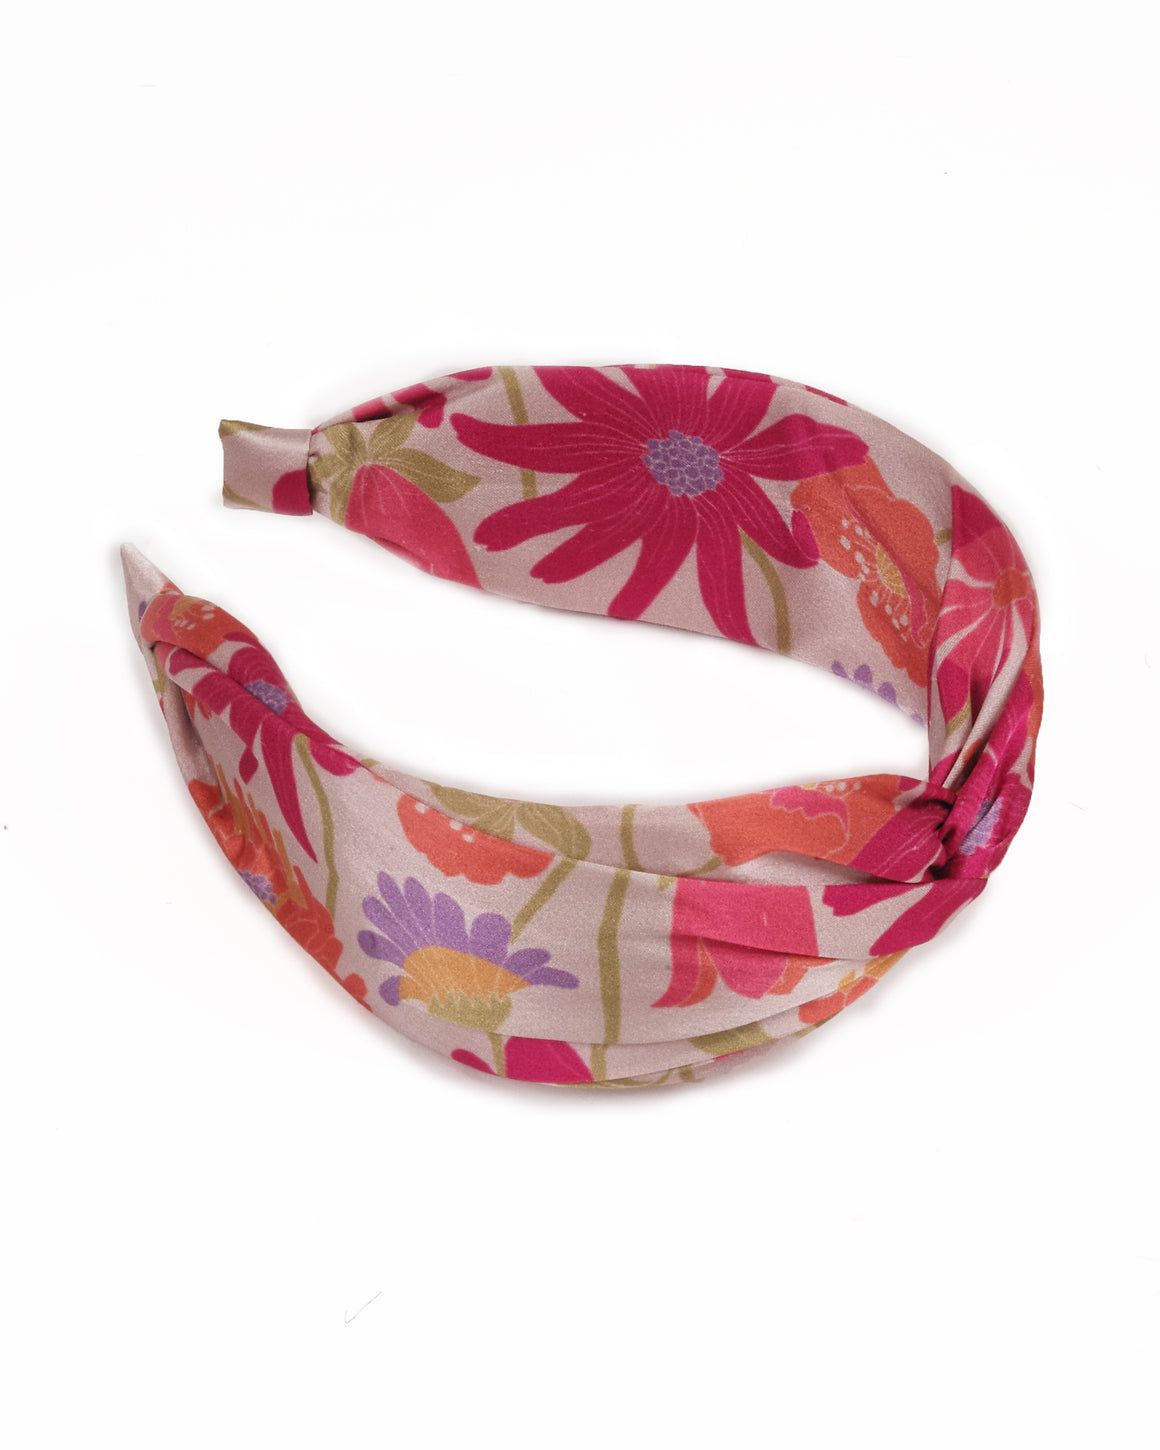 powder design cream headband with red, pink, purple and yellow flowers